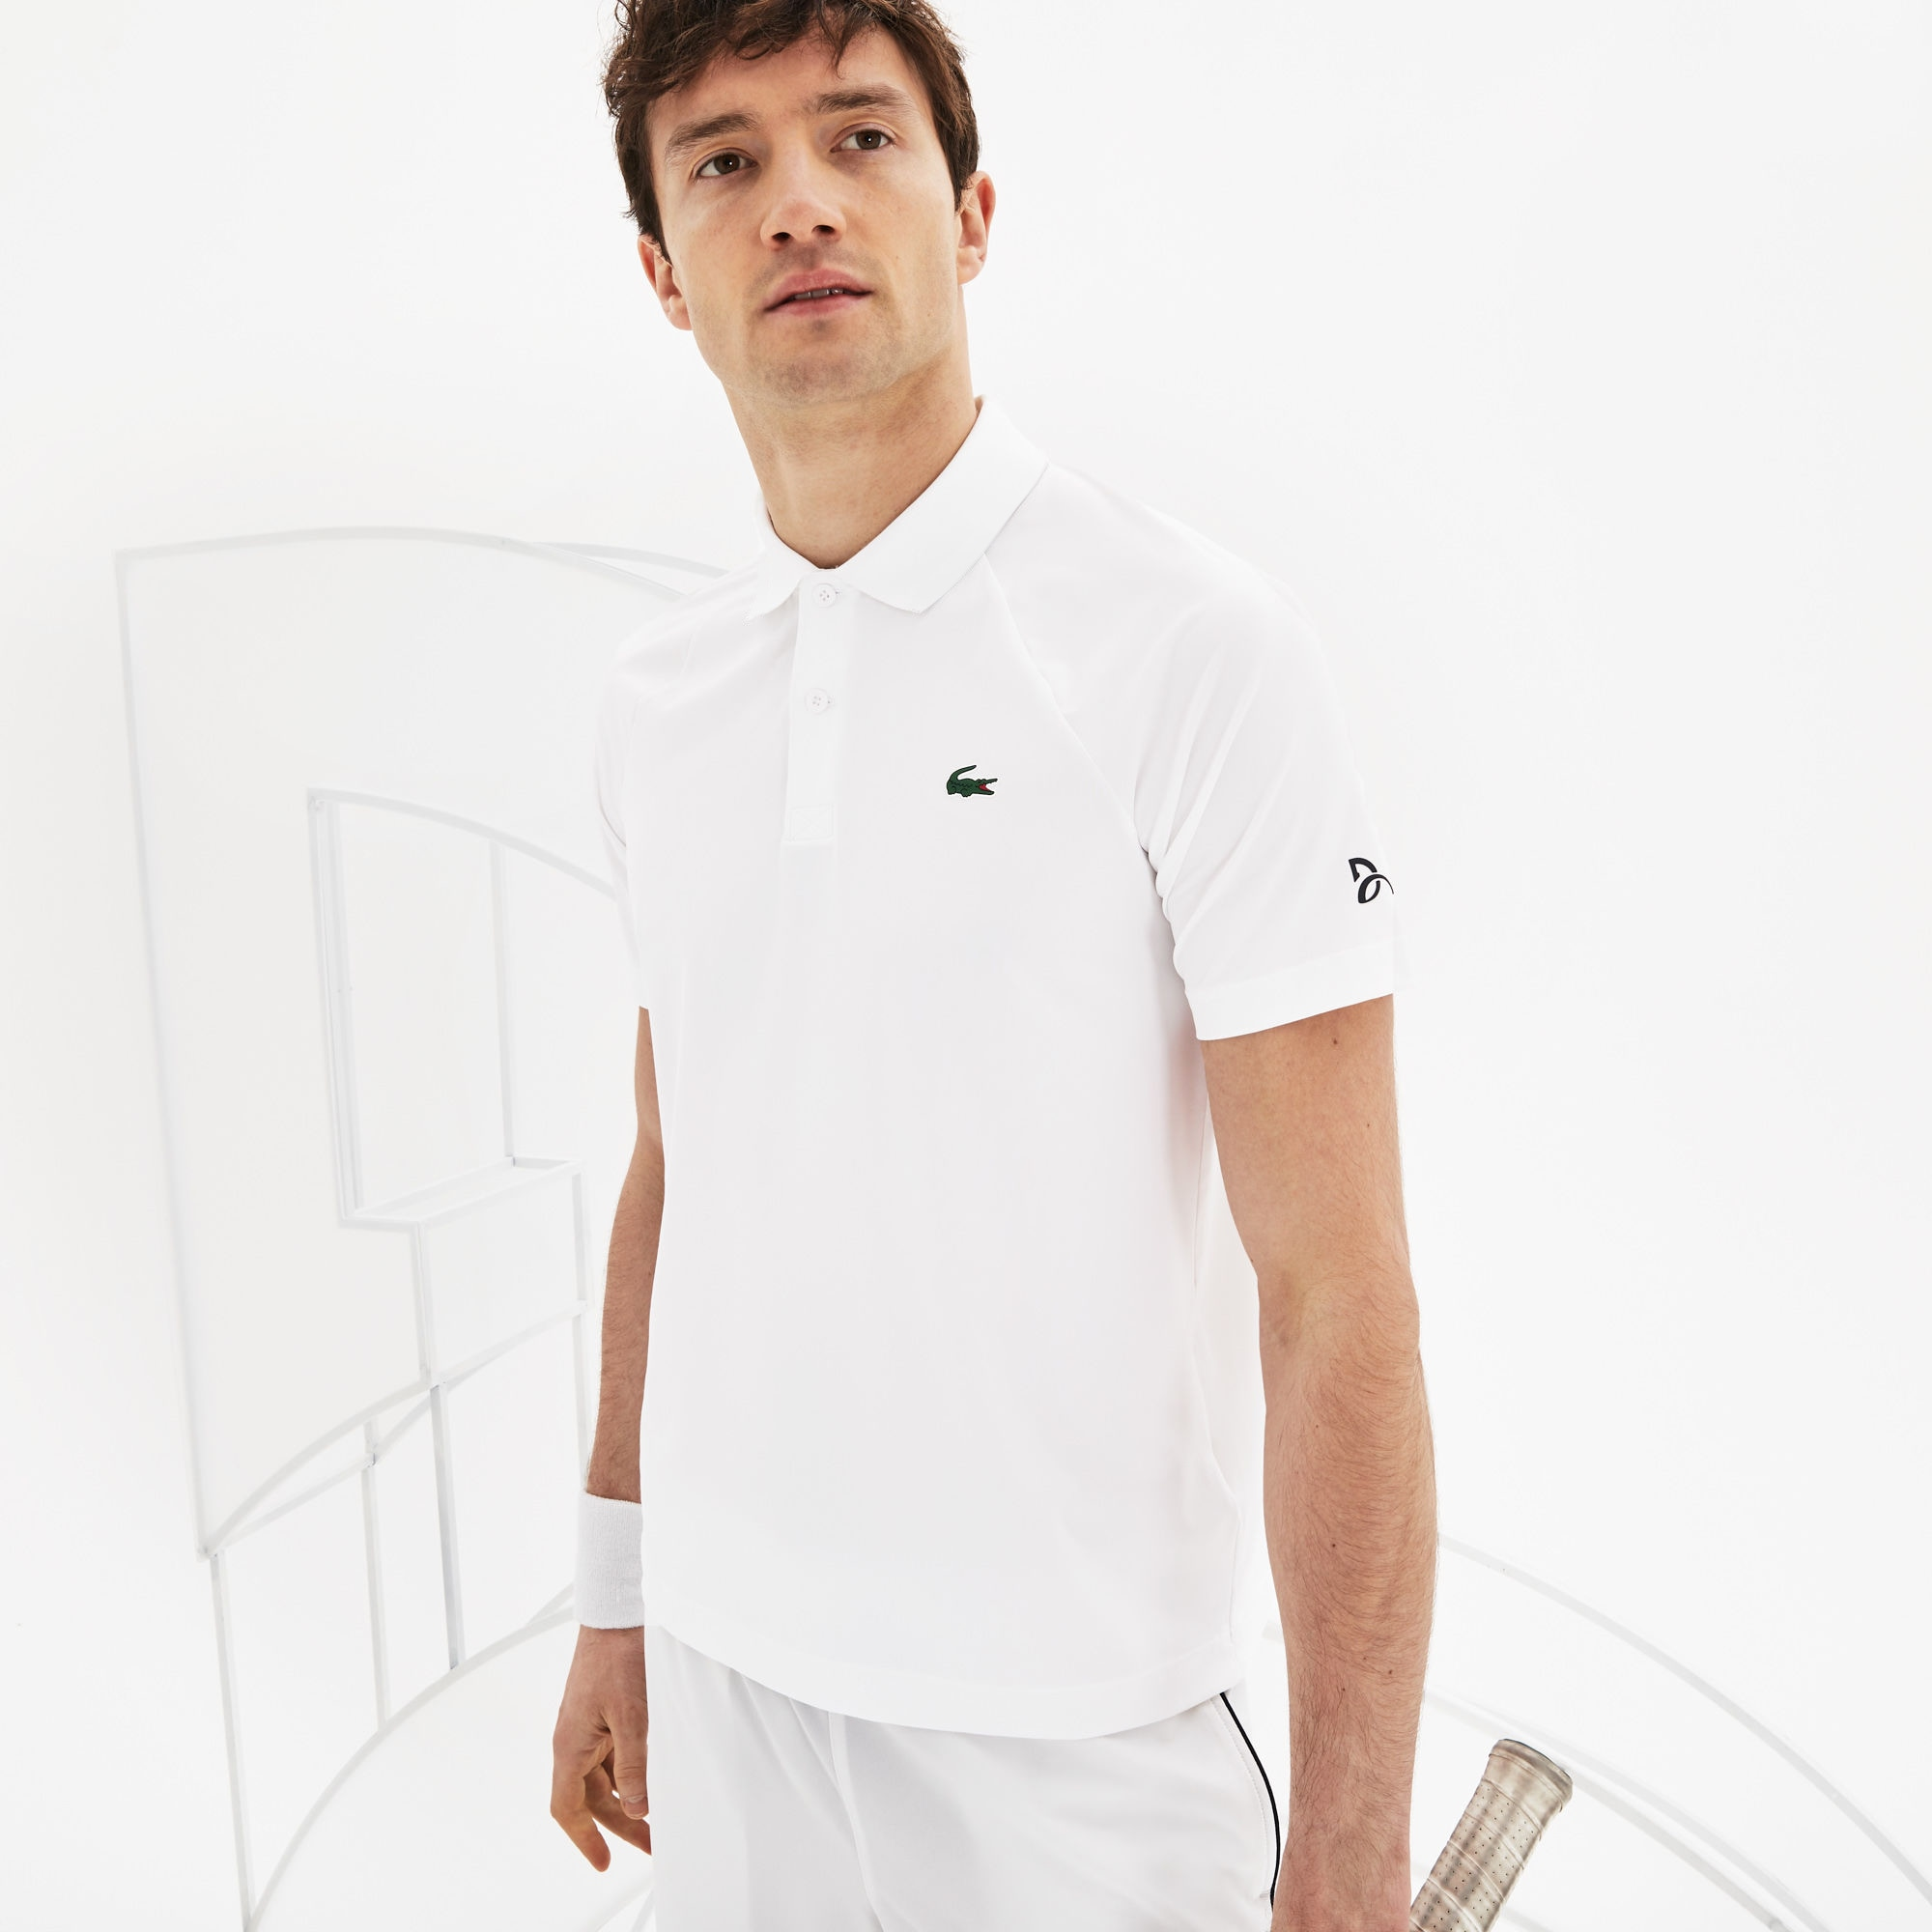 Polo Lacoste SPORT x Novak Djokovic -  Exclusive Green Edition